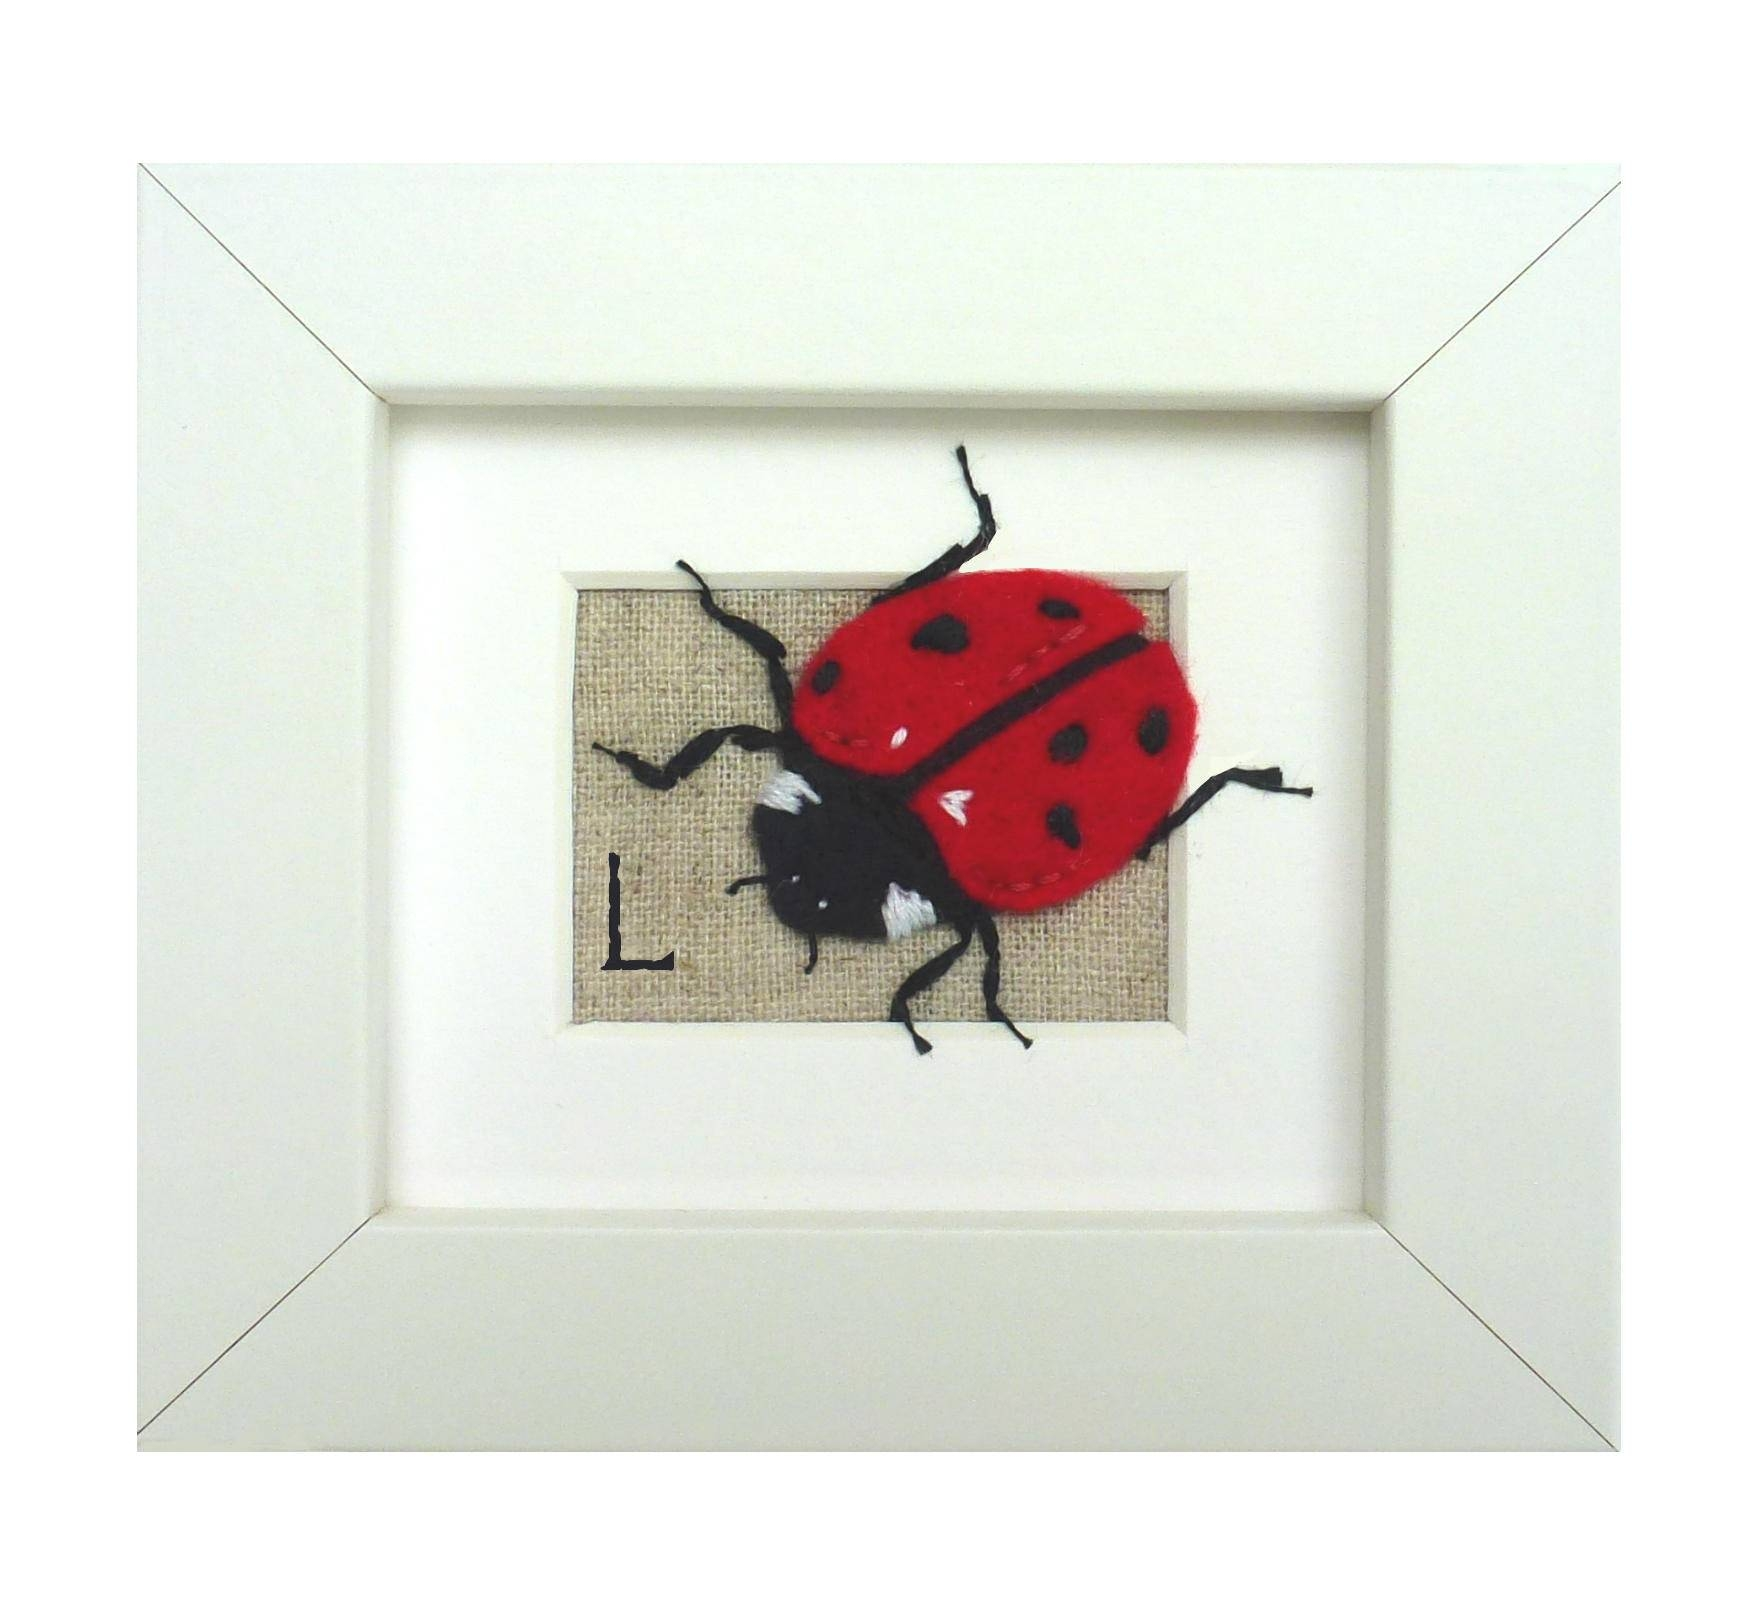 Ladybird Wall Art, Insect Wall Art, Children's Bedroom Art, New With Newest Insect Wall Art (View 10 of 30)